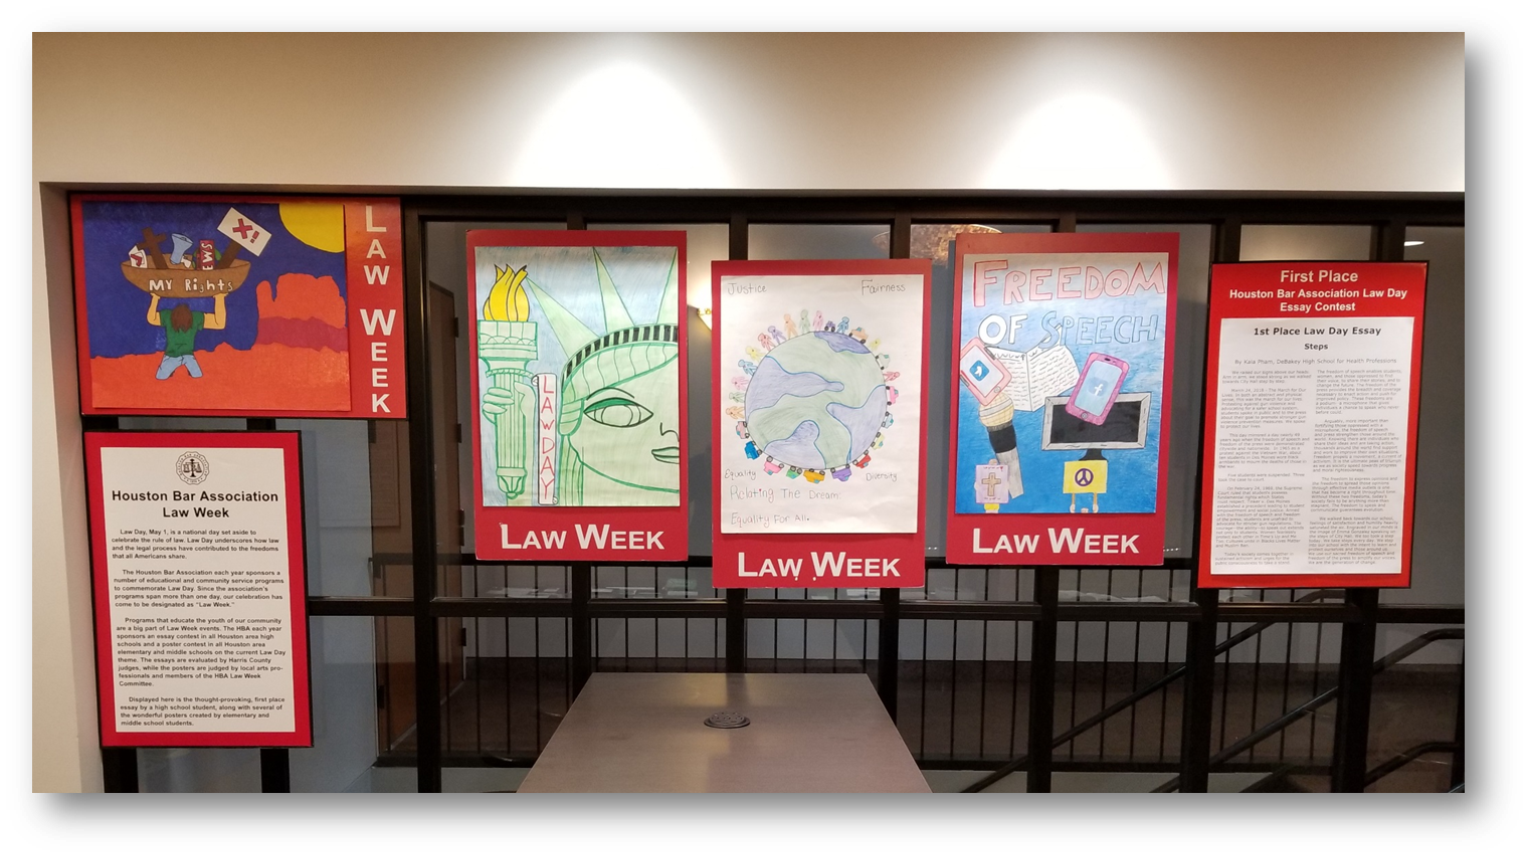 Houston Bar Association Law Week Poster Contest on Display at the entrance of the Harris County Law Library.